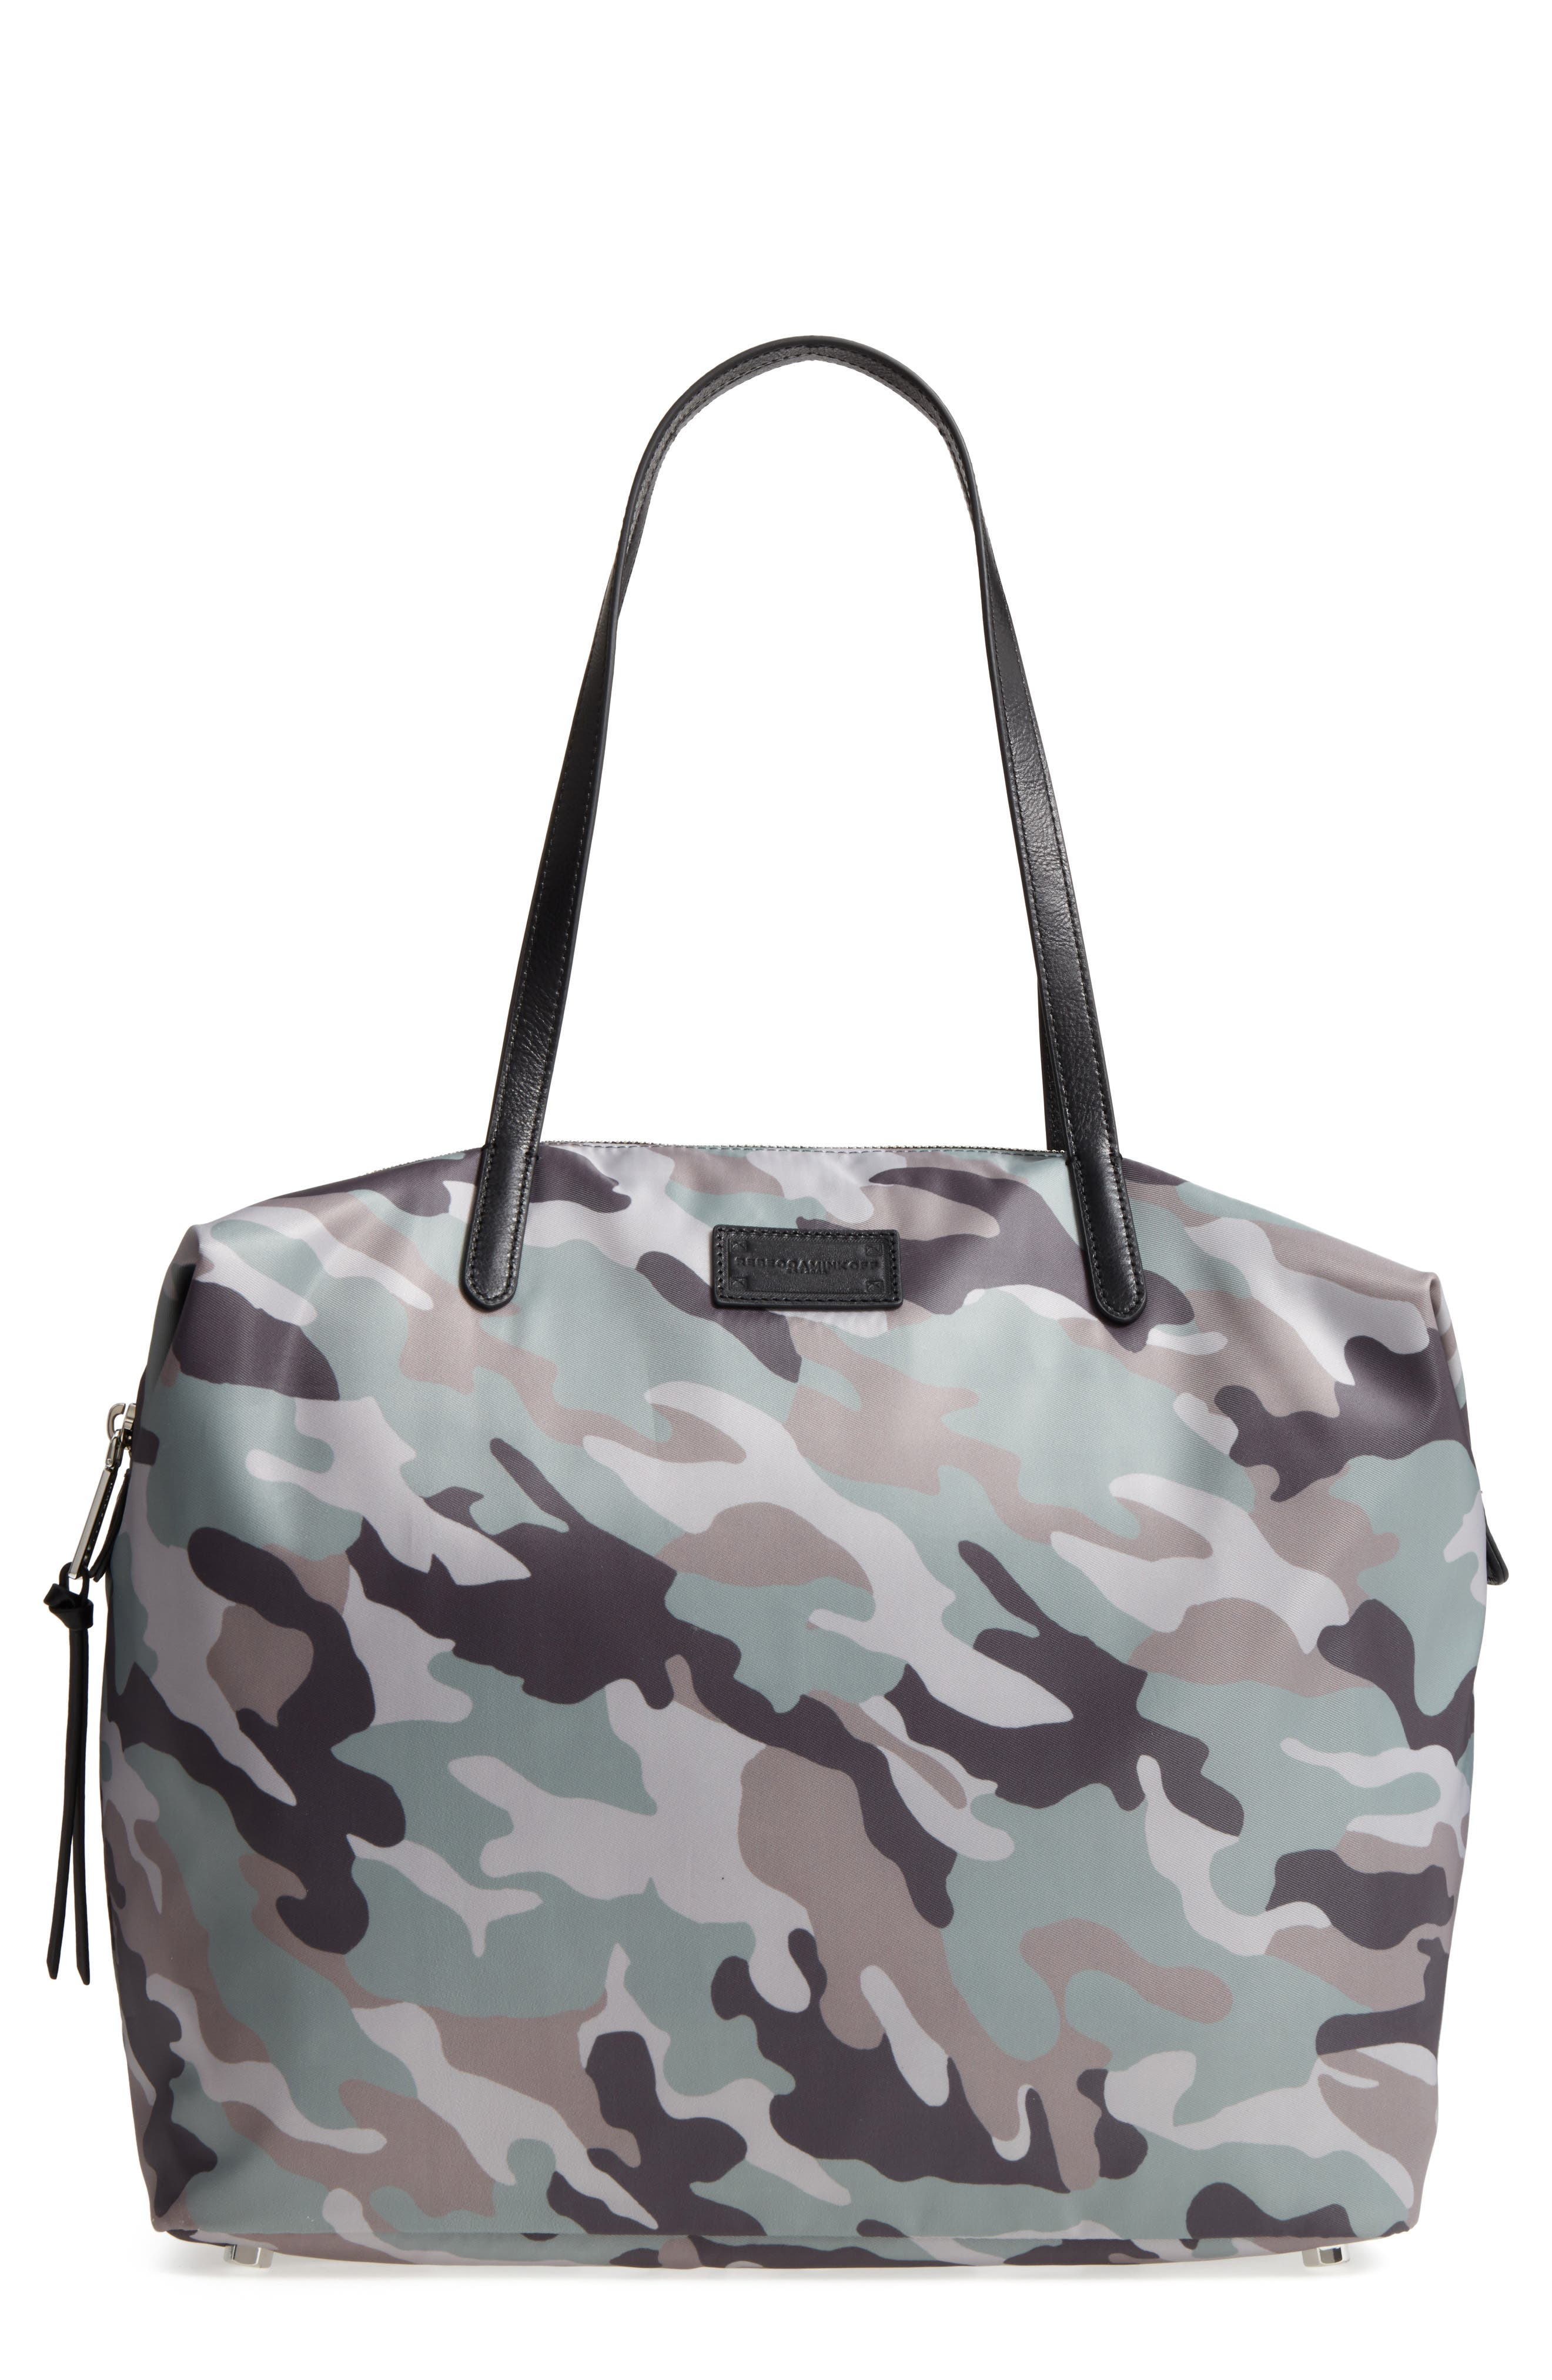 Low Shipping Fee Online Rebecca Minkoff Washed Camo Tote Discount 2018 Discount Real Outlet Sast Cheap With Mastercard d5gKBLrpHf